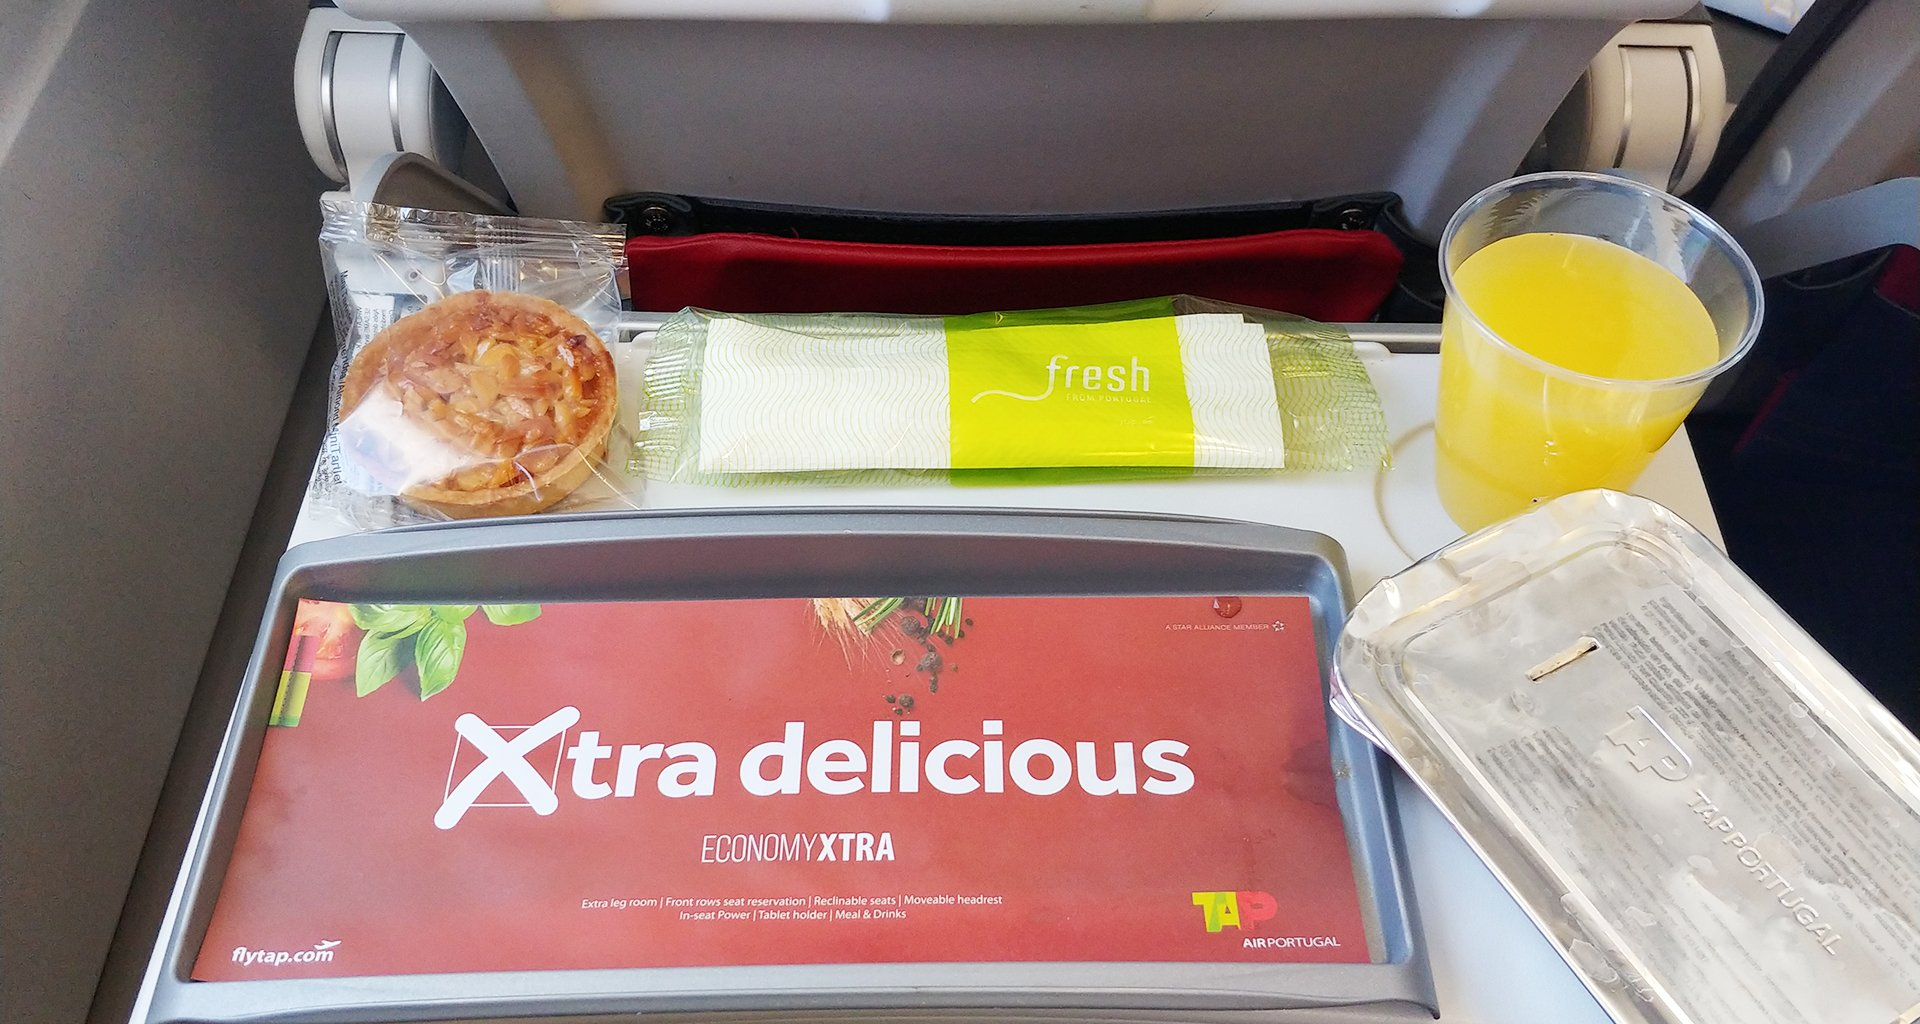 tap airlines xtra delicious meal